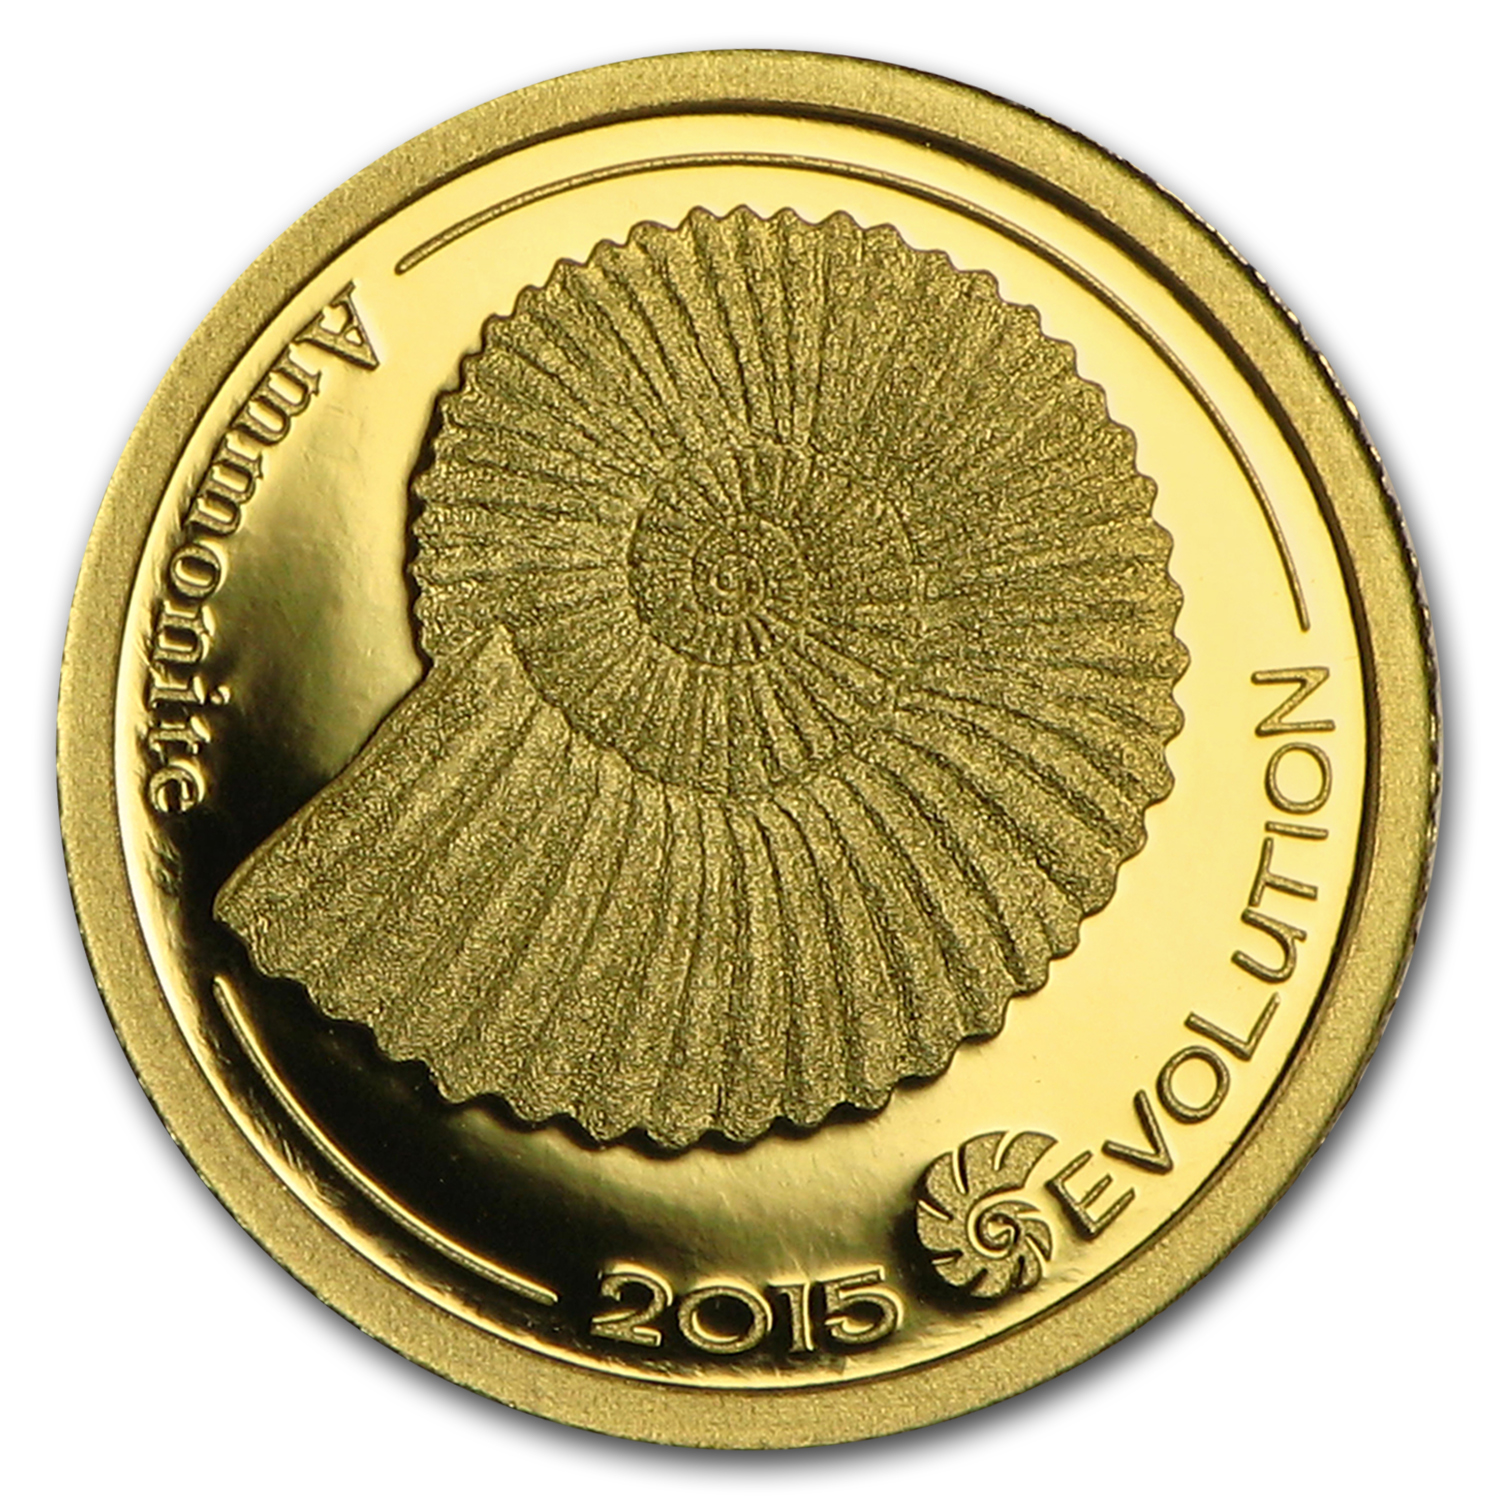 2015 Mongolia 1/2 gram Pf Gold 1000 Togrog Evolution (Ammonite)